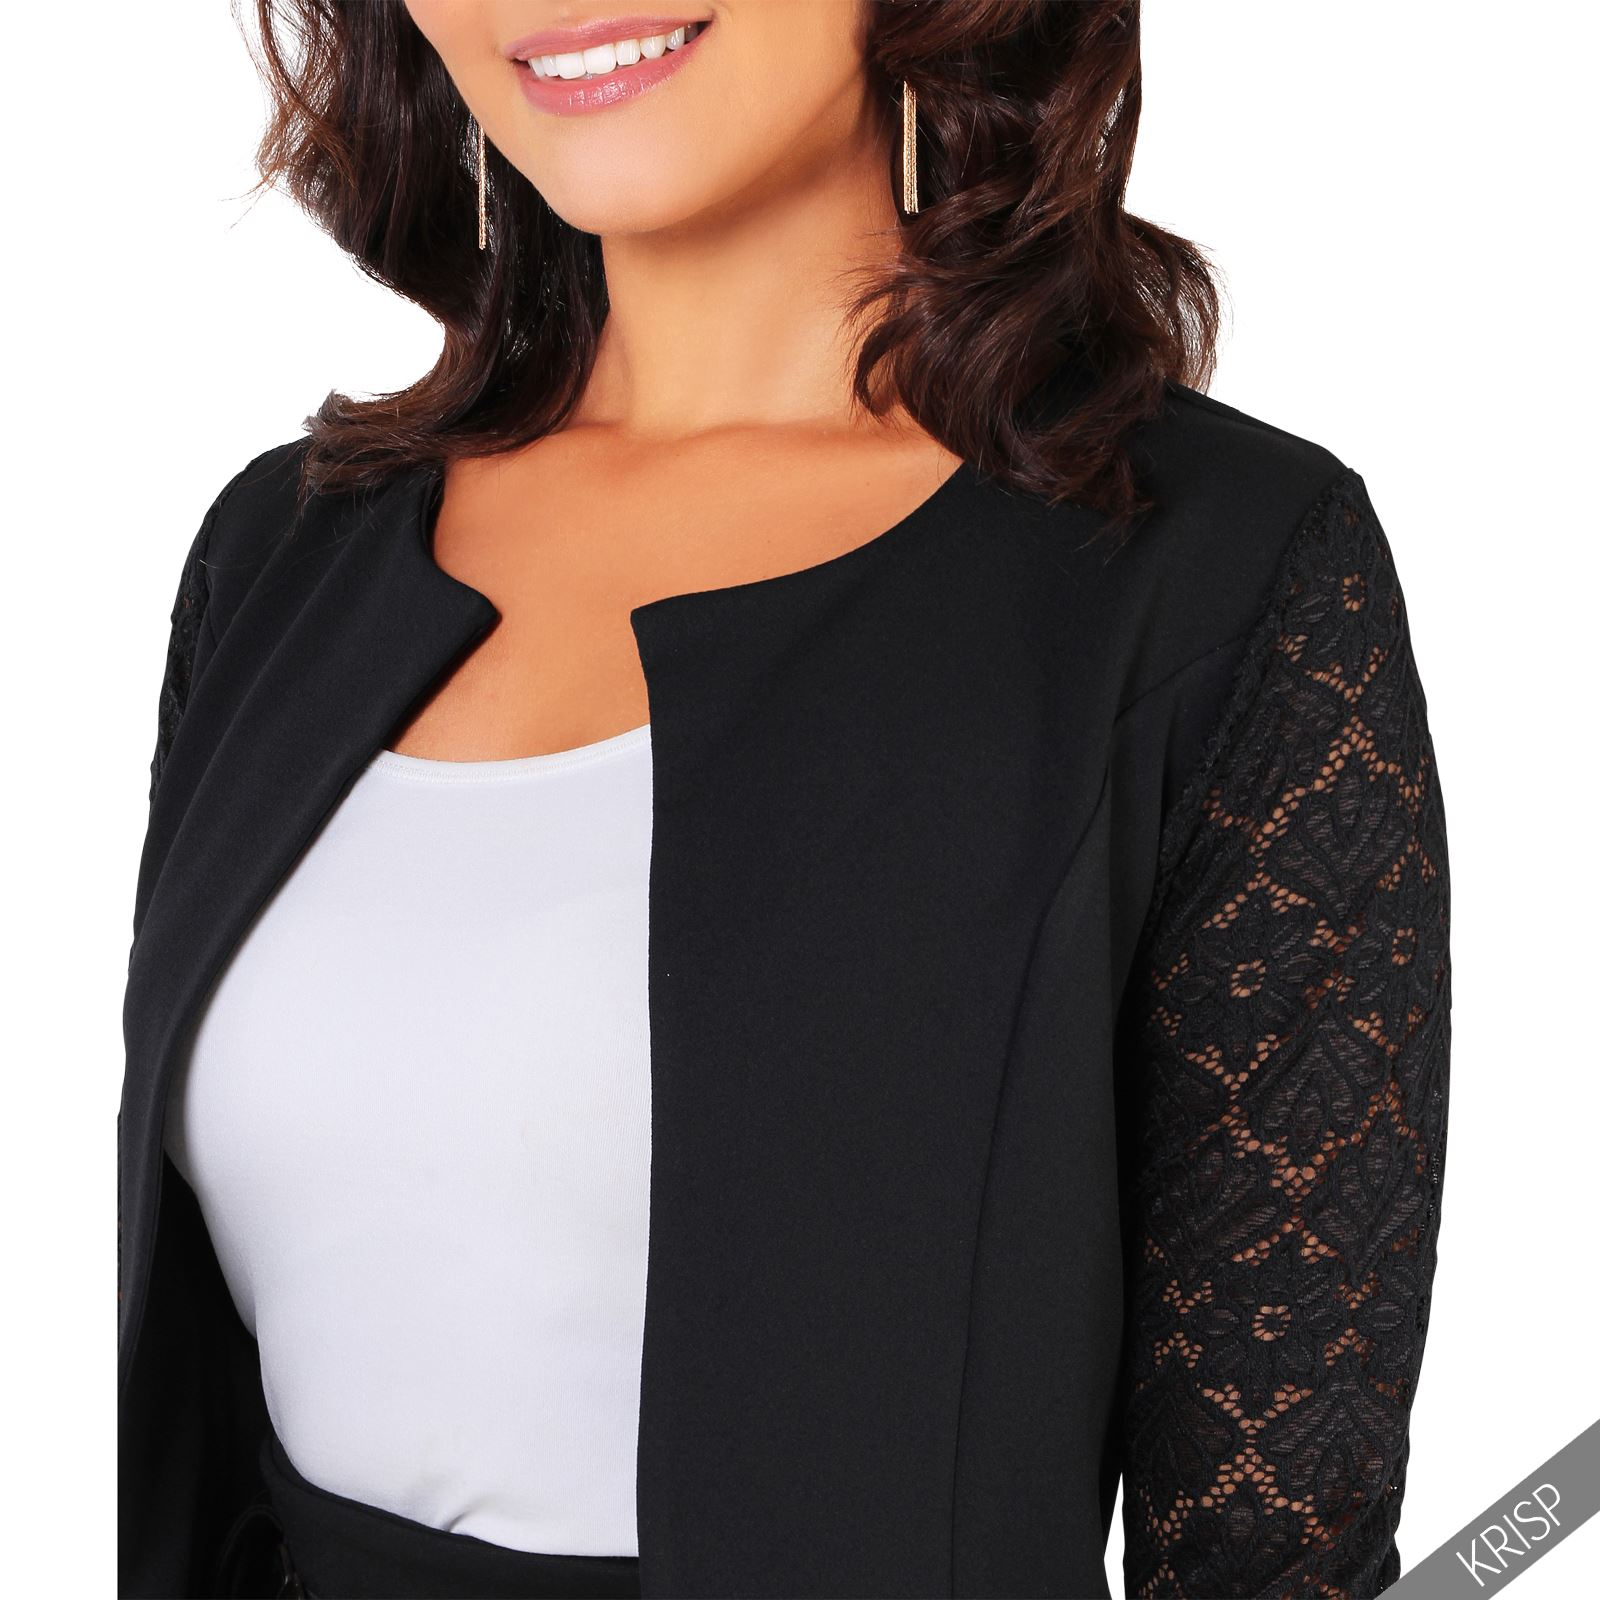 Find the right women's vests and jacket to accentuate a formal pair of women's pants for an elegant look. The latest jackets are also a great accessory for a dress. If you're attending a wedding or holiday party, find a slim and shapely blazer to throw over a cocktail dress or a floral maxi.